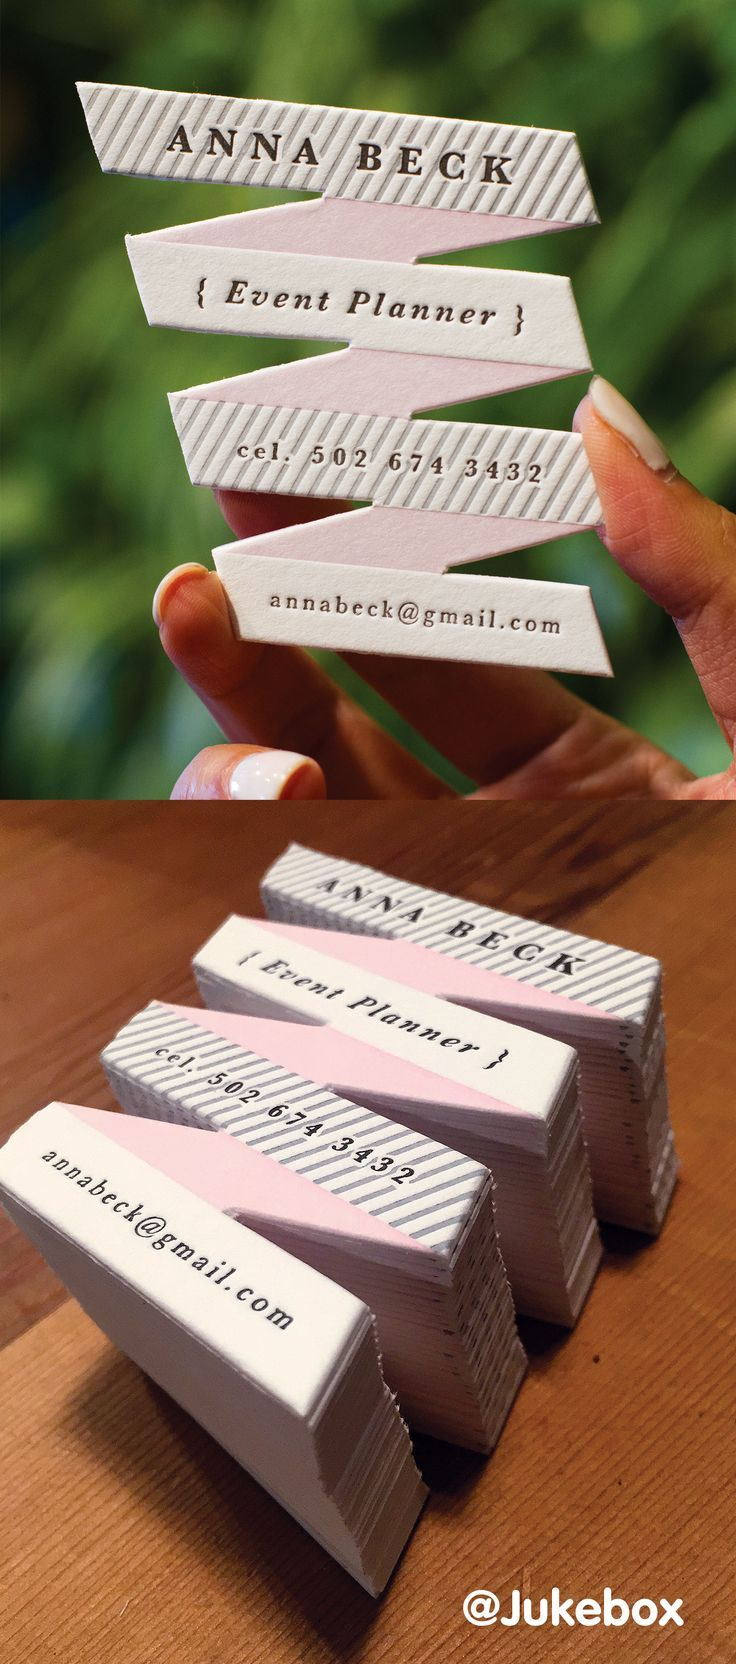 Best 25 cute business cards ideas on pinterest letterpress personalize your business cards with a custom die cut shape like these cute letterpressed magicingreecefo Image collections